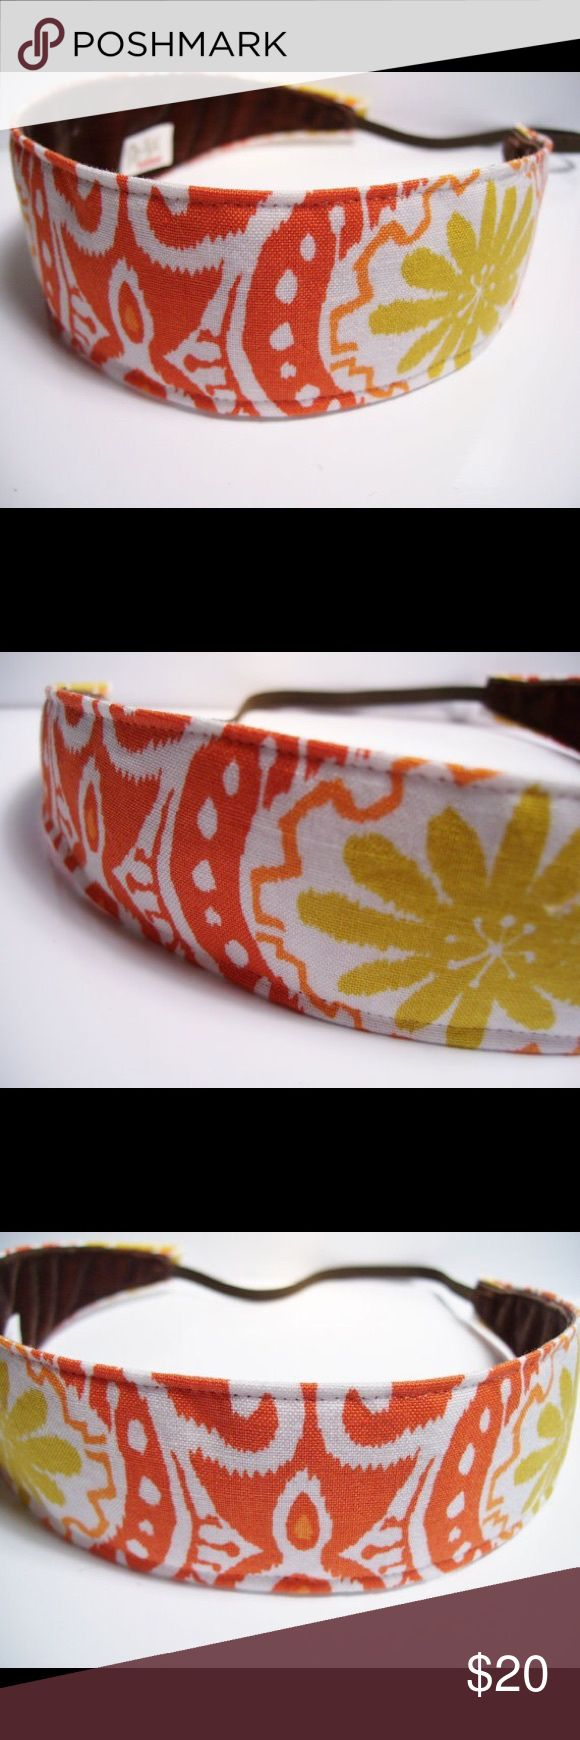 Handmade No-Slip Fabric Headband Orange Ikat Print Unique stretch Headband featuring designer fabric and a no-slip backing. Handmade to fit comfortably and perfectly. Great for athletic wear, running errands or even dressing up! Washable, durable and gorgeous. No more hurt heads from tight bands and no more slipping off! I am obsessed with these headbands and you will be too! I wear mine to dance classes, at work and out to dinner with my boyfriend. Discounts on bundles and more…